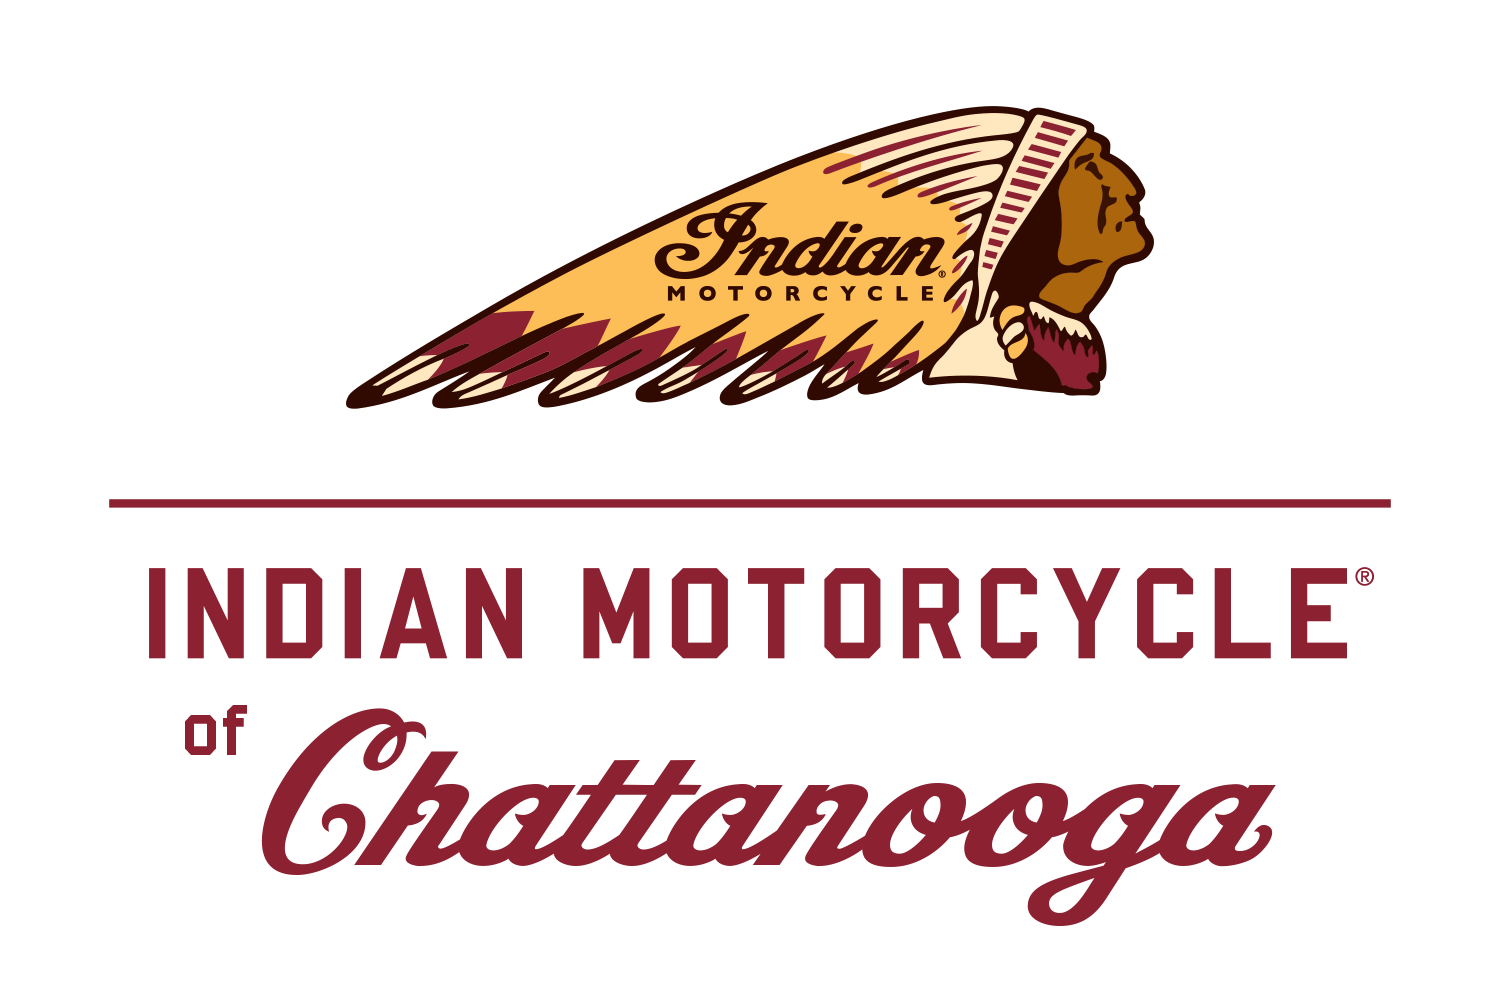 Indian Motorcycle of Chattanooga / Slingshot of Chattanooga